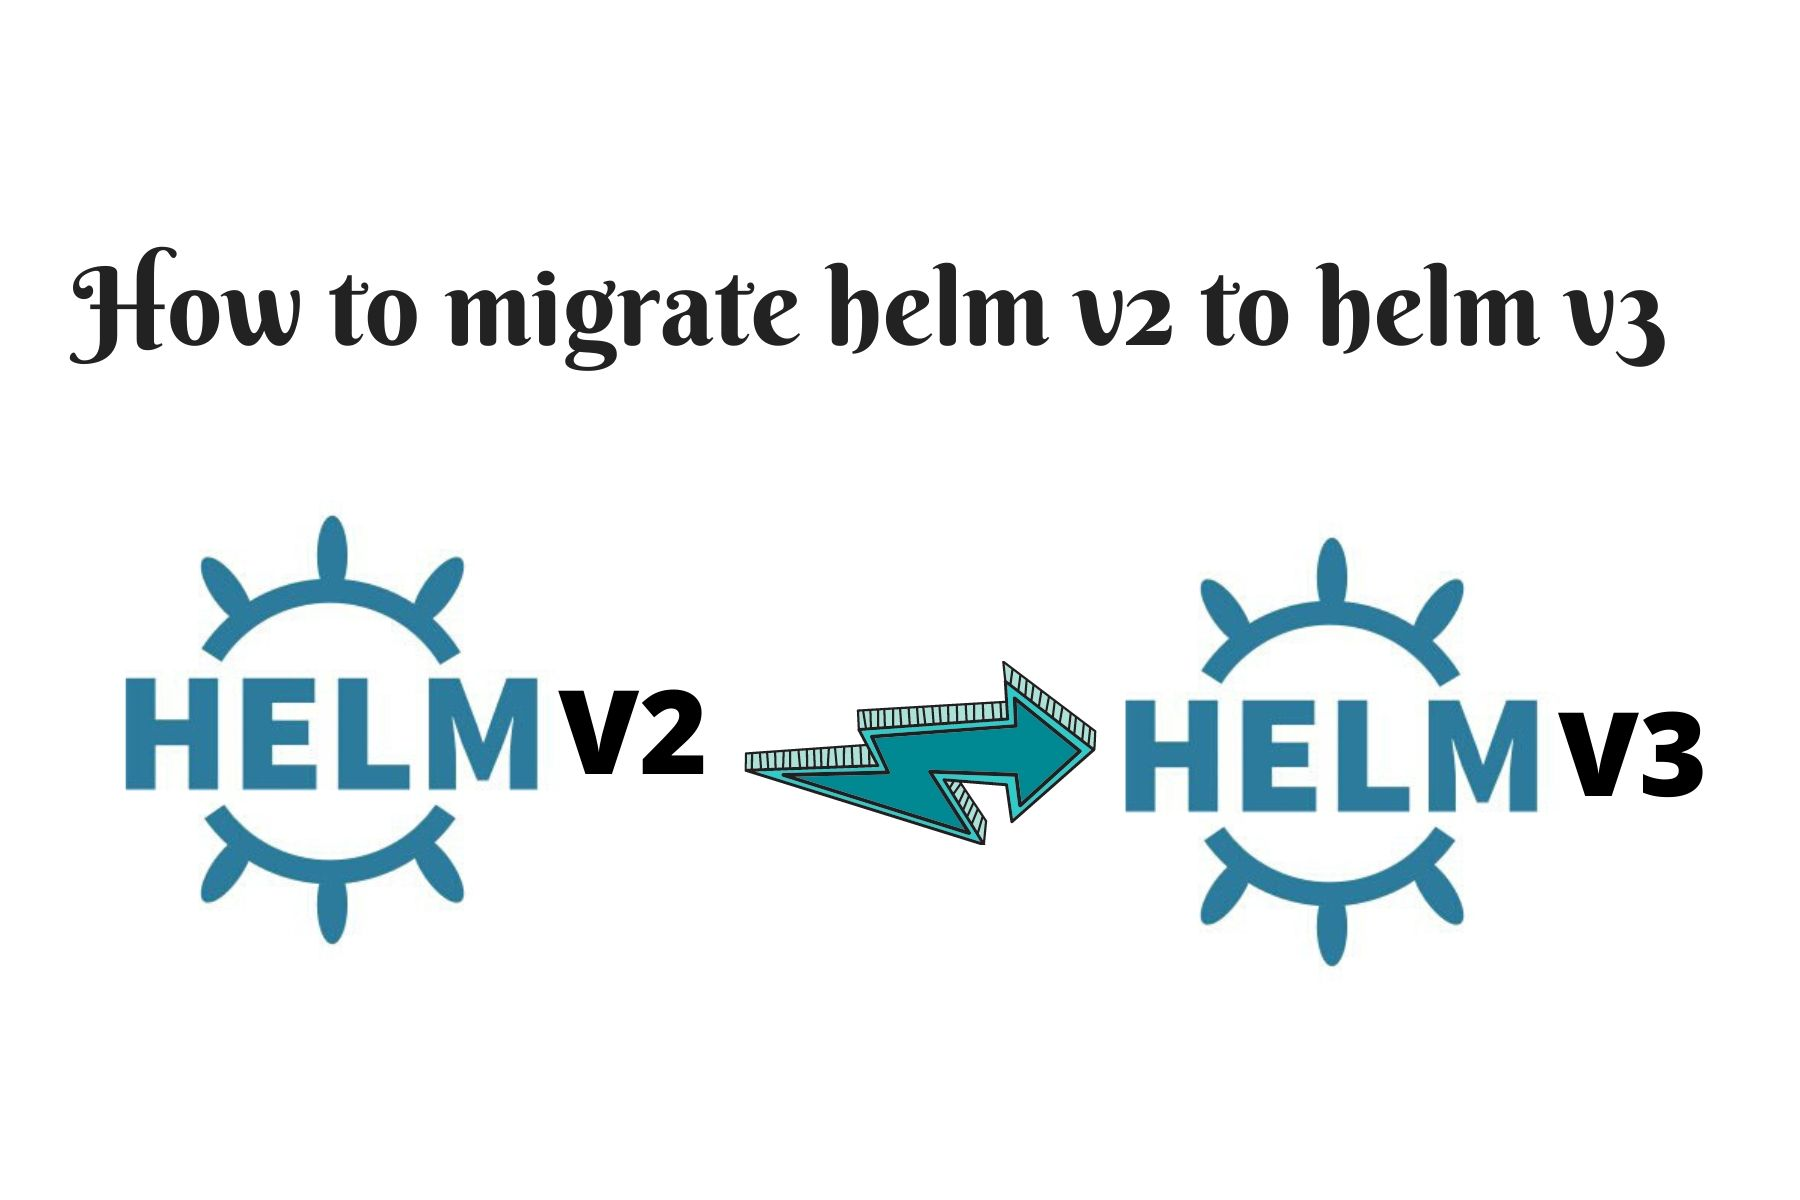 How to migrate helm v2 to helm v3